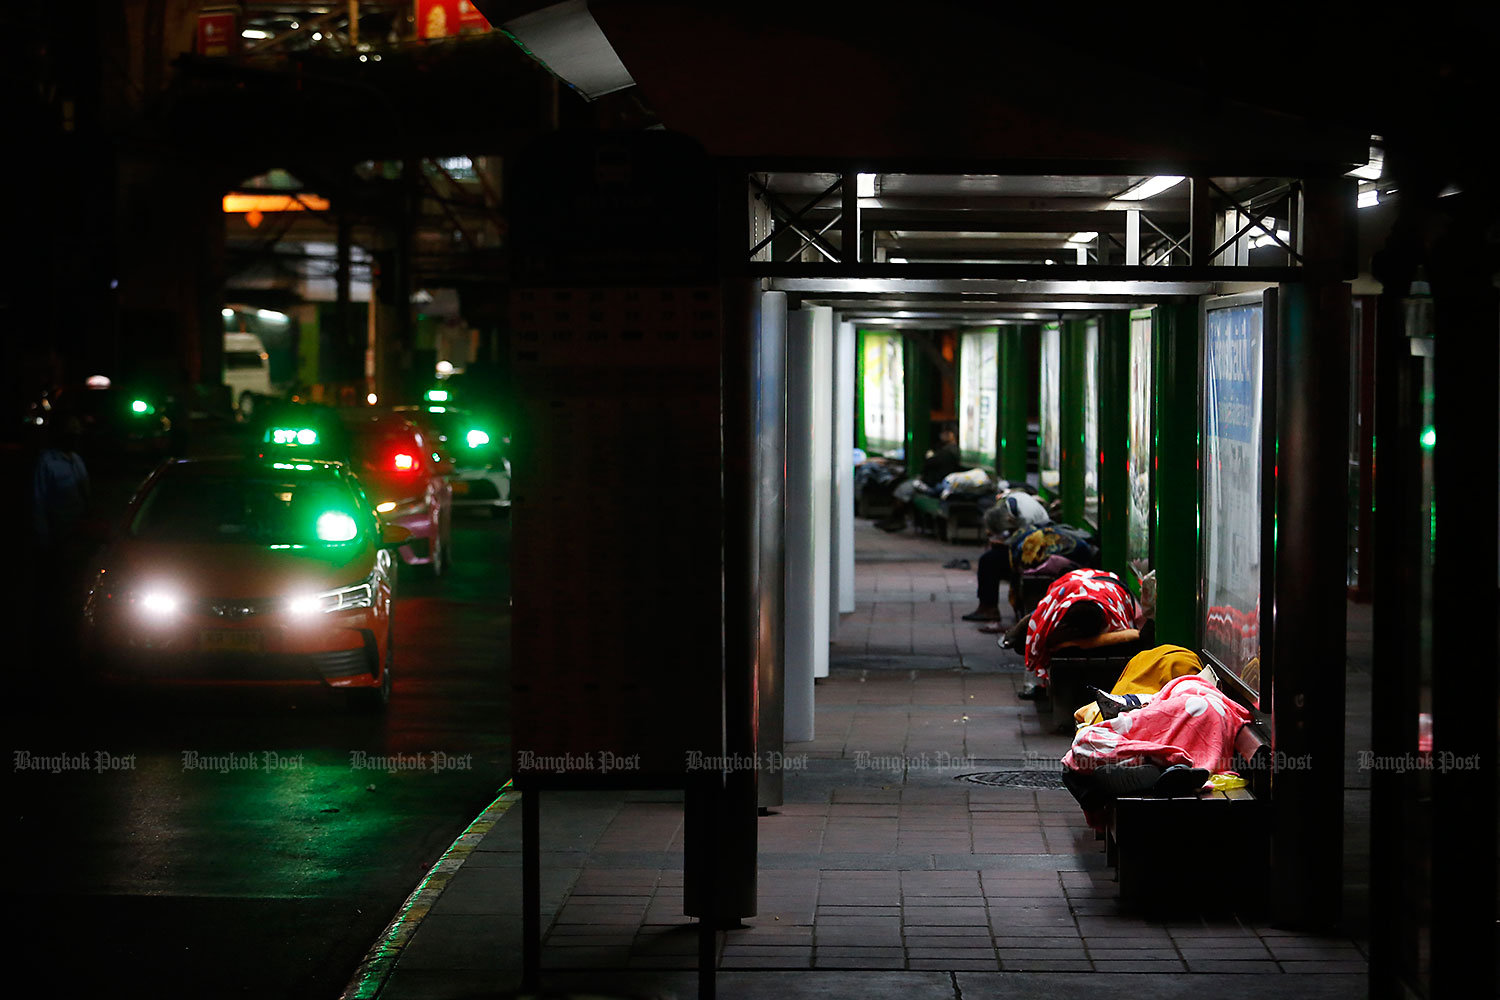 Feeling the chill: Homeless people bundle up with blankets at a bus stop near the Victory Monument on Tuesday night, when temperatures in the capital dipped to 16 degrees Celsius. The cool spell is expected to last for a few more days. (Photo by Wichan Charoenkiatpakul)